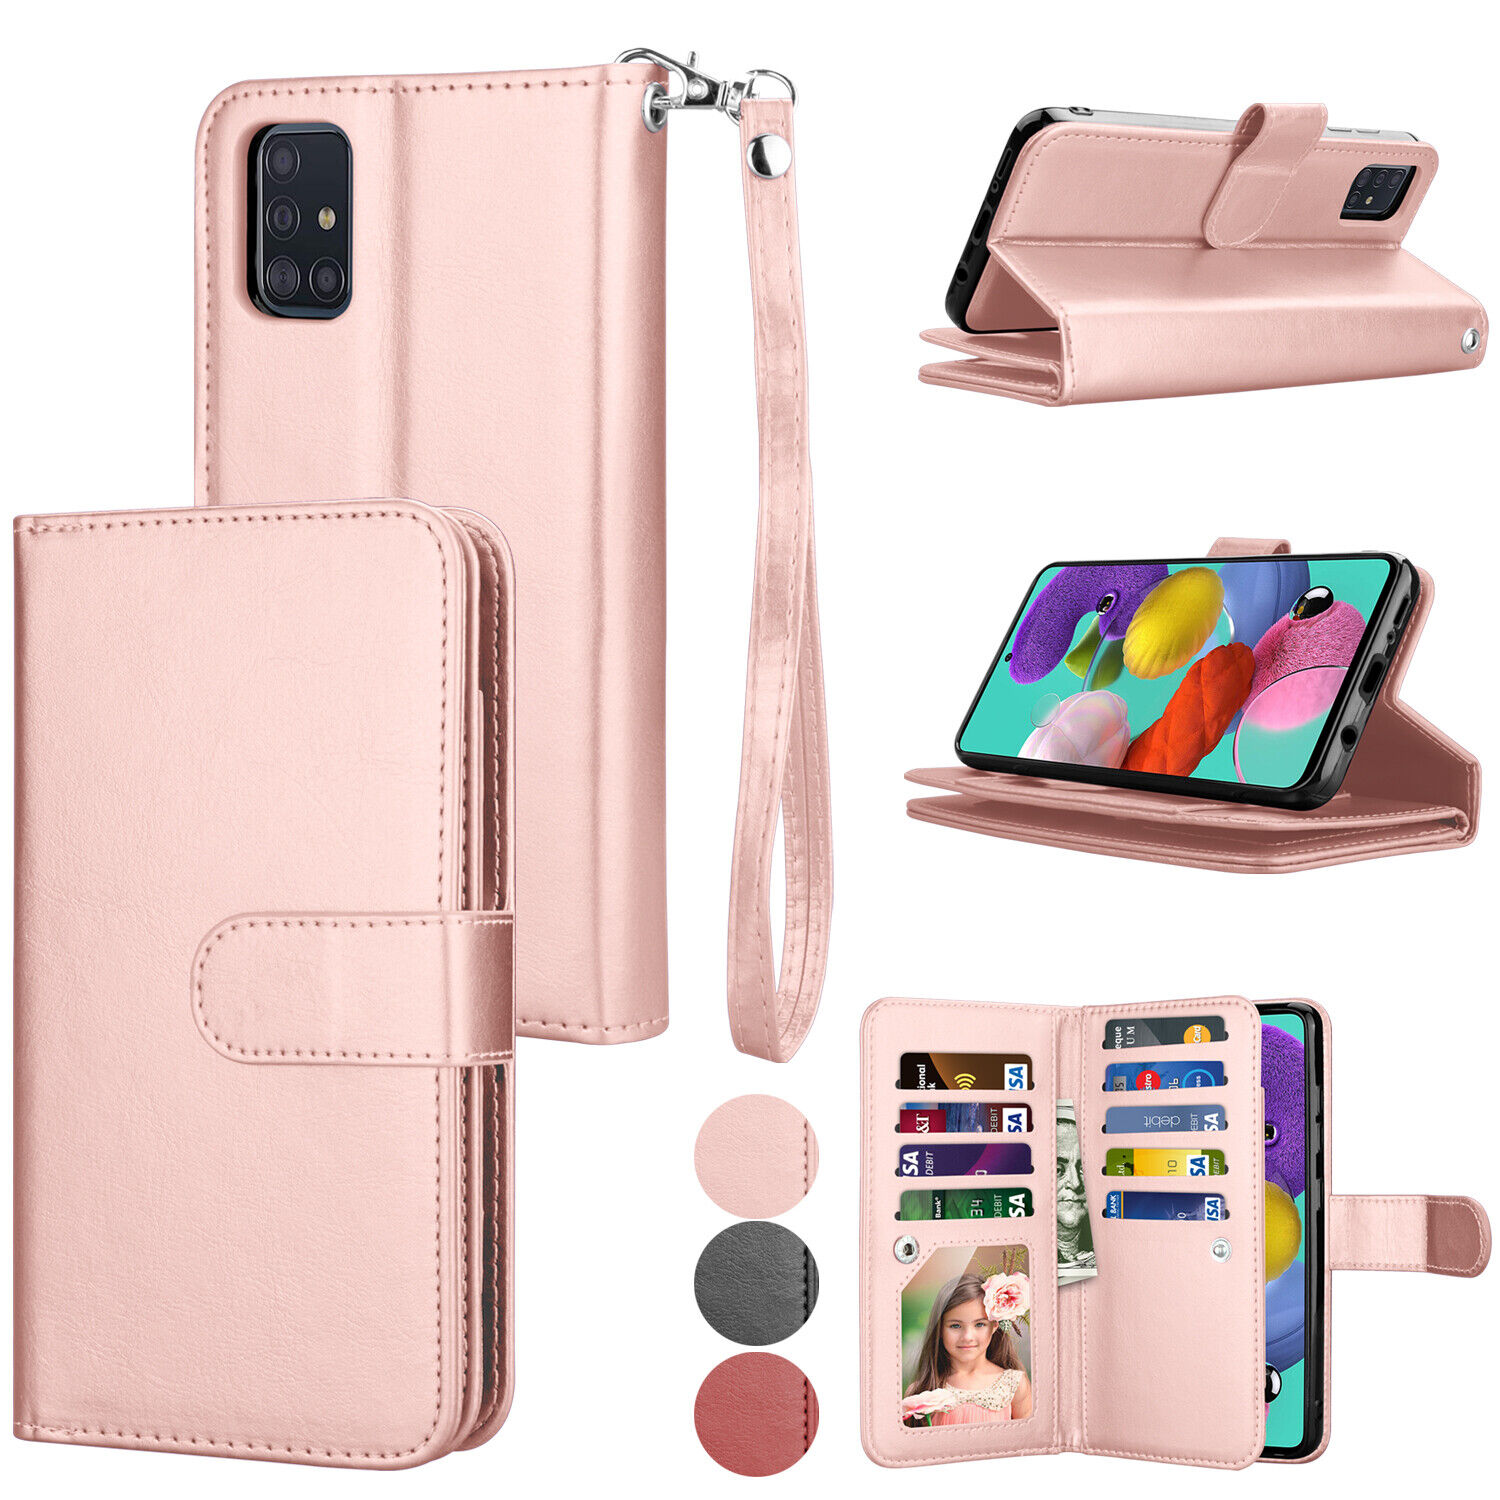 For Samsung Galaxy A51 A71 Wallet Case Leather Card Folio Magnetic Phone Cover Cases, Covers & Skins